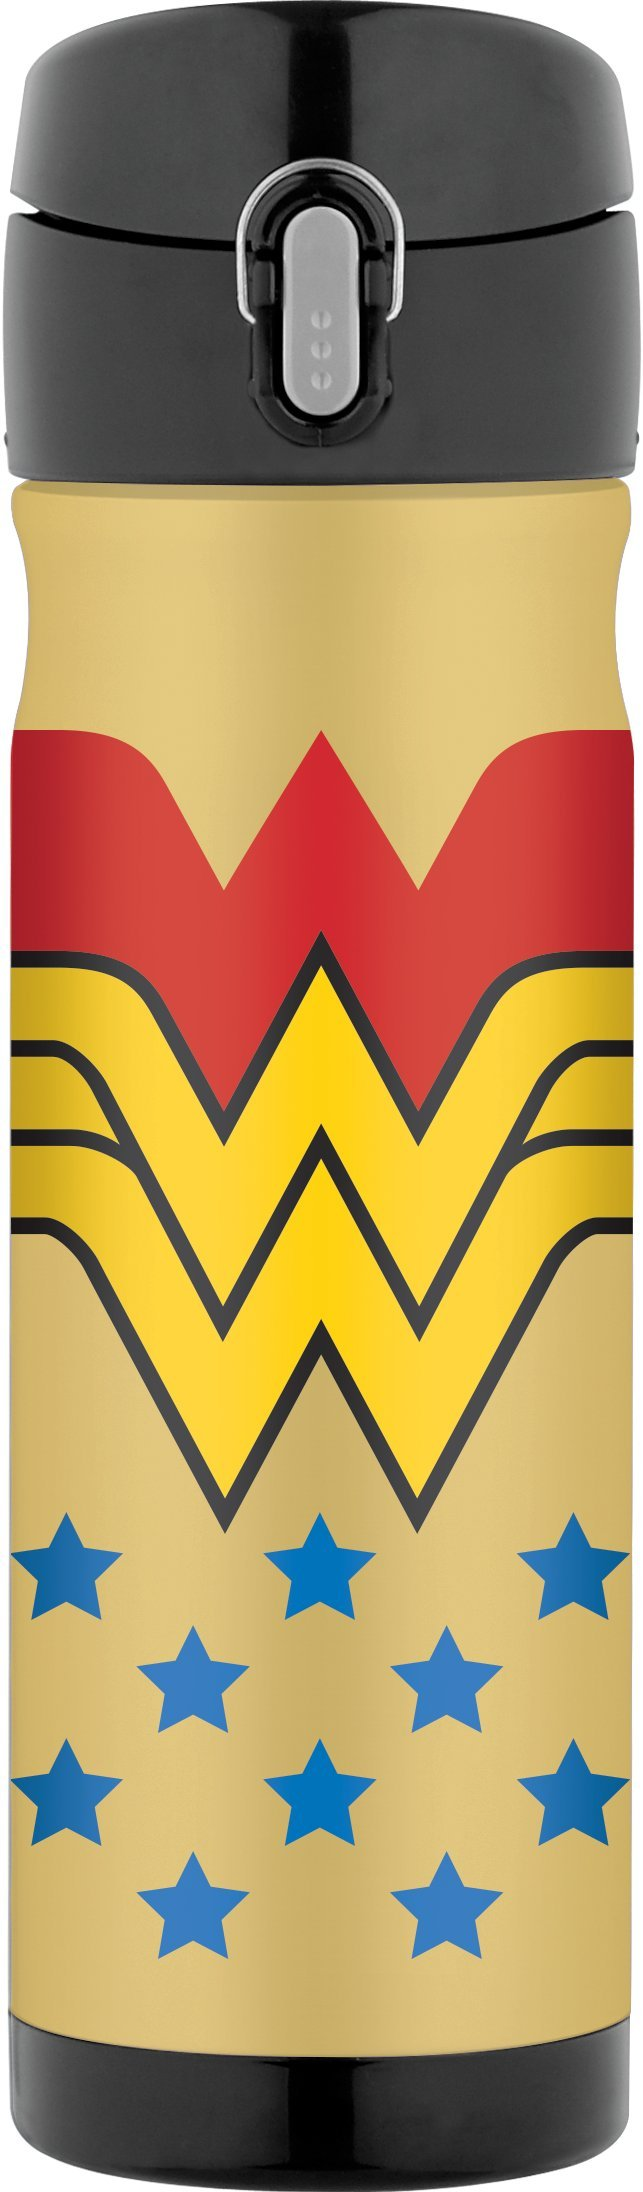 Thermos 16 Ounce Stainless Steel Commuter Bottle, Wonder Woman